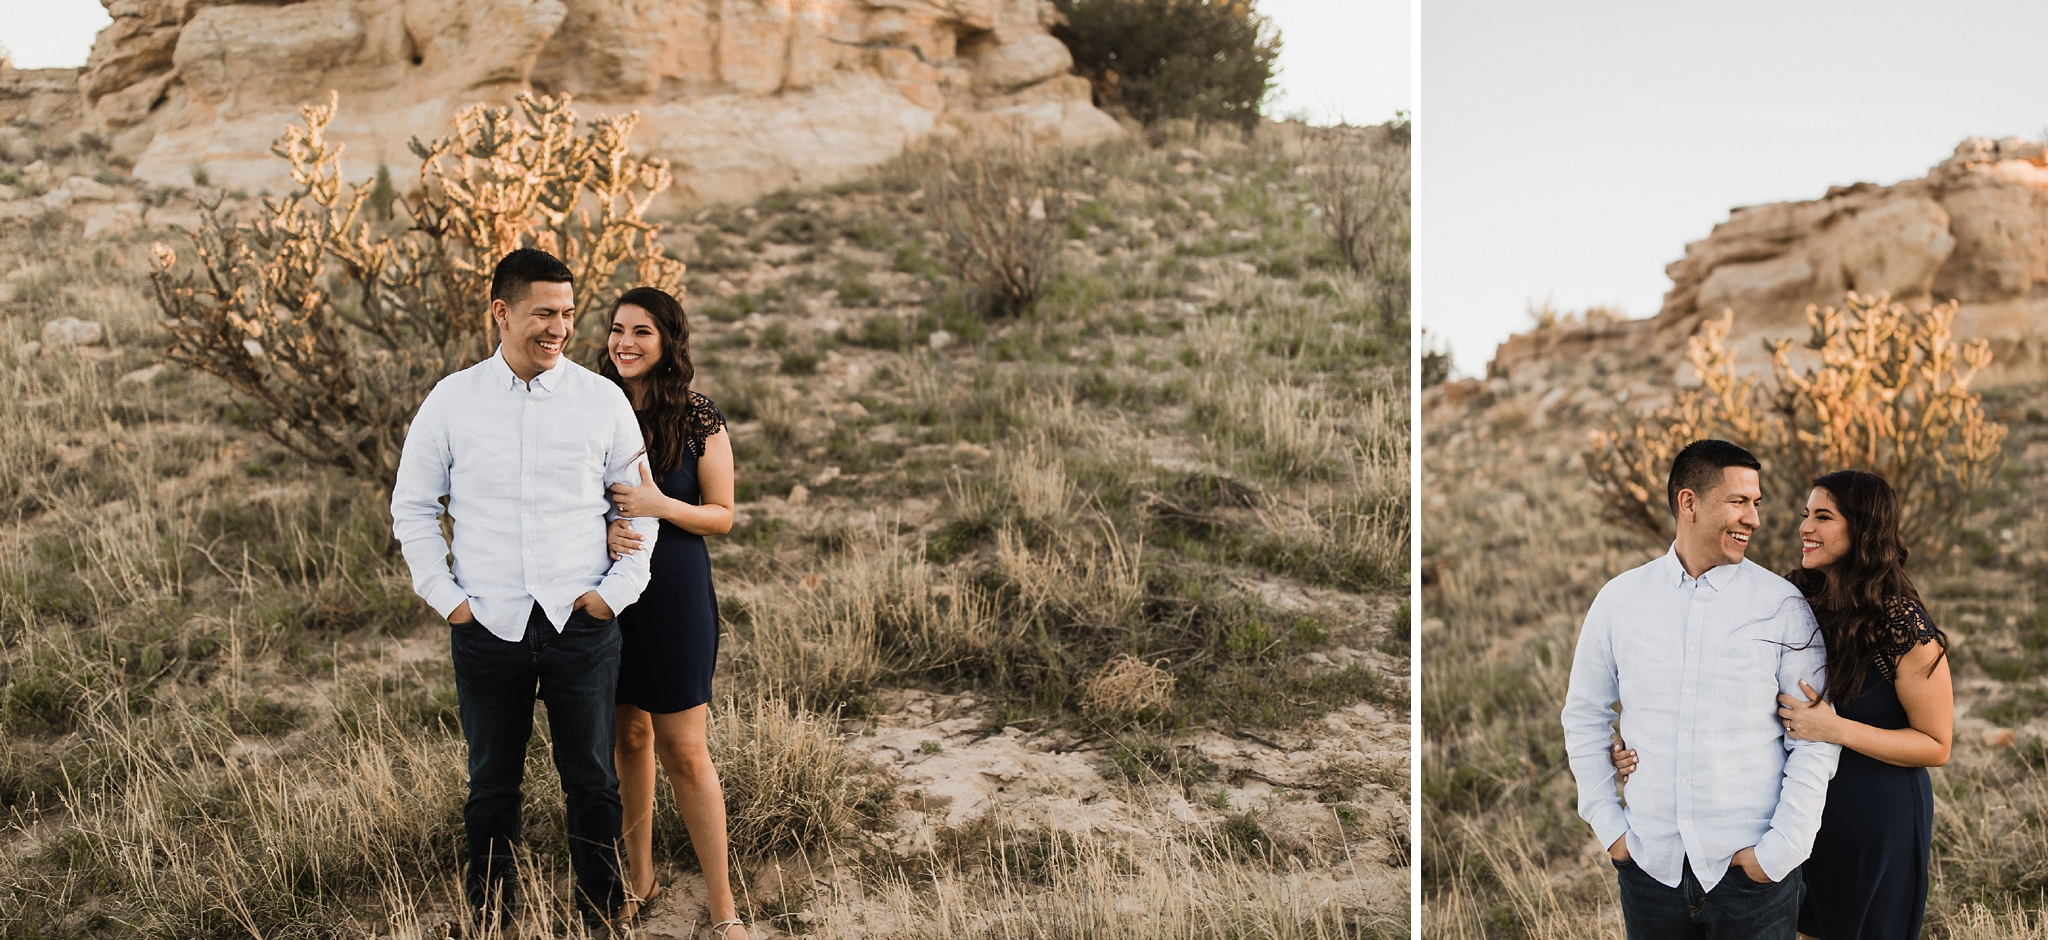 Alicia+lucia+photography+-+albuquerque+wedding+photographer+-+santa+fe+wedding+photography+-+new+mexico+wedding+photographer+-+new+mexico+wedding+-+new+mexico+engagement+-+white+mesa+engagement+-+desert+engagement_0024.jpg